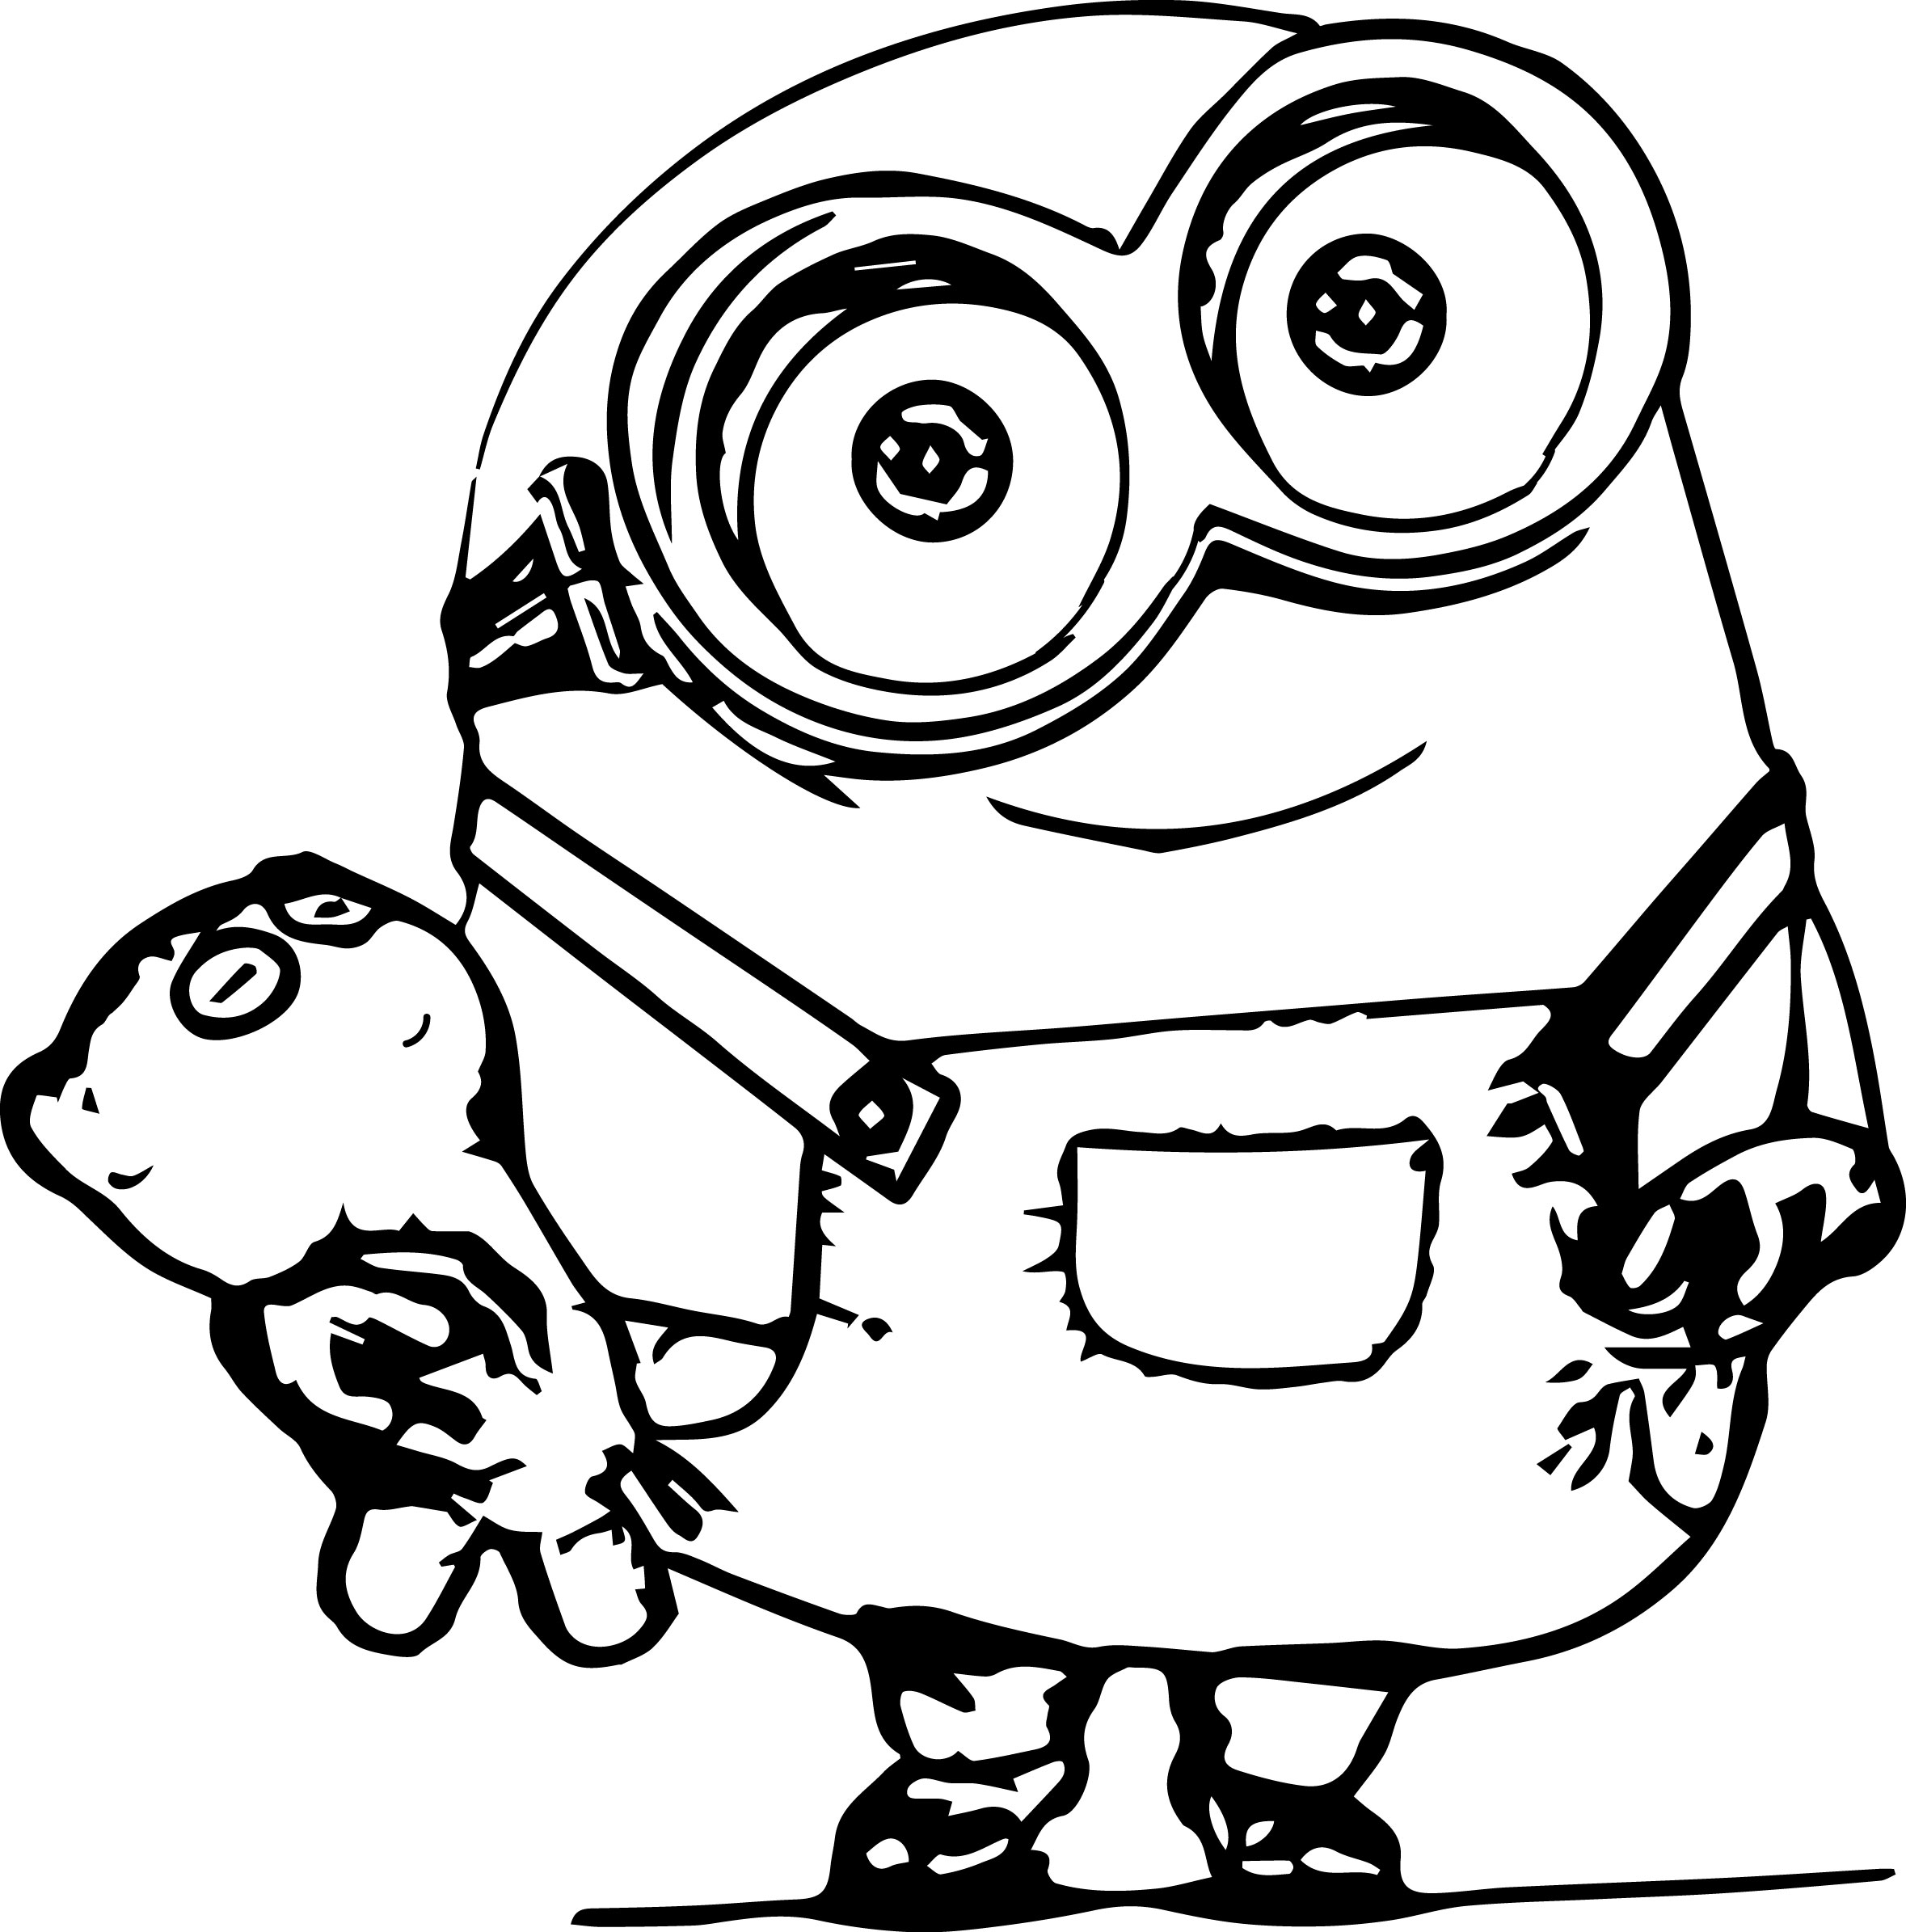 minion coloring page - Coling Pages